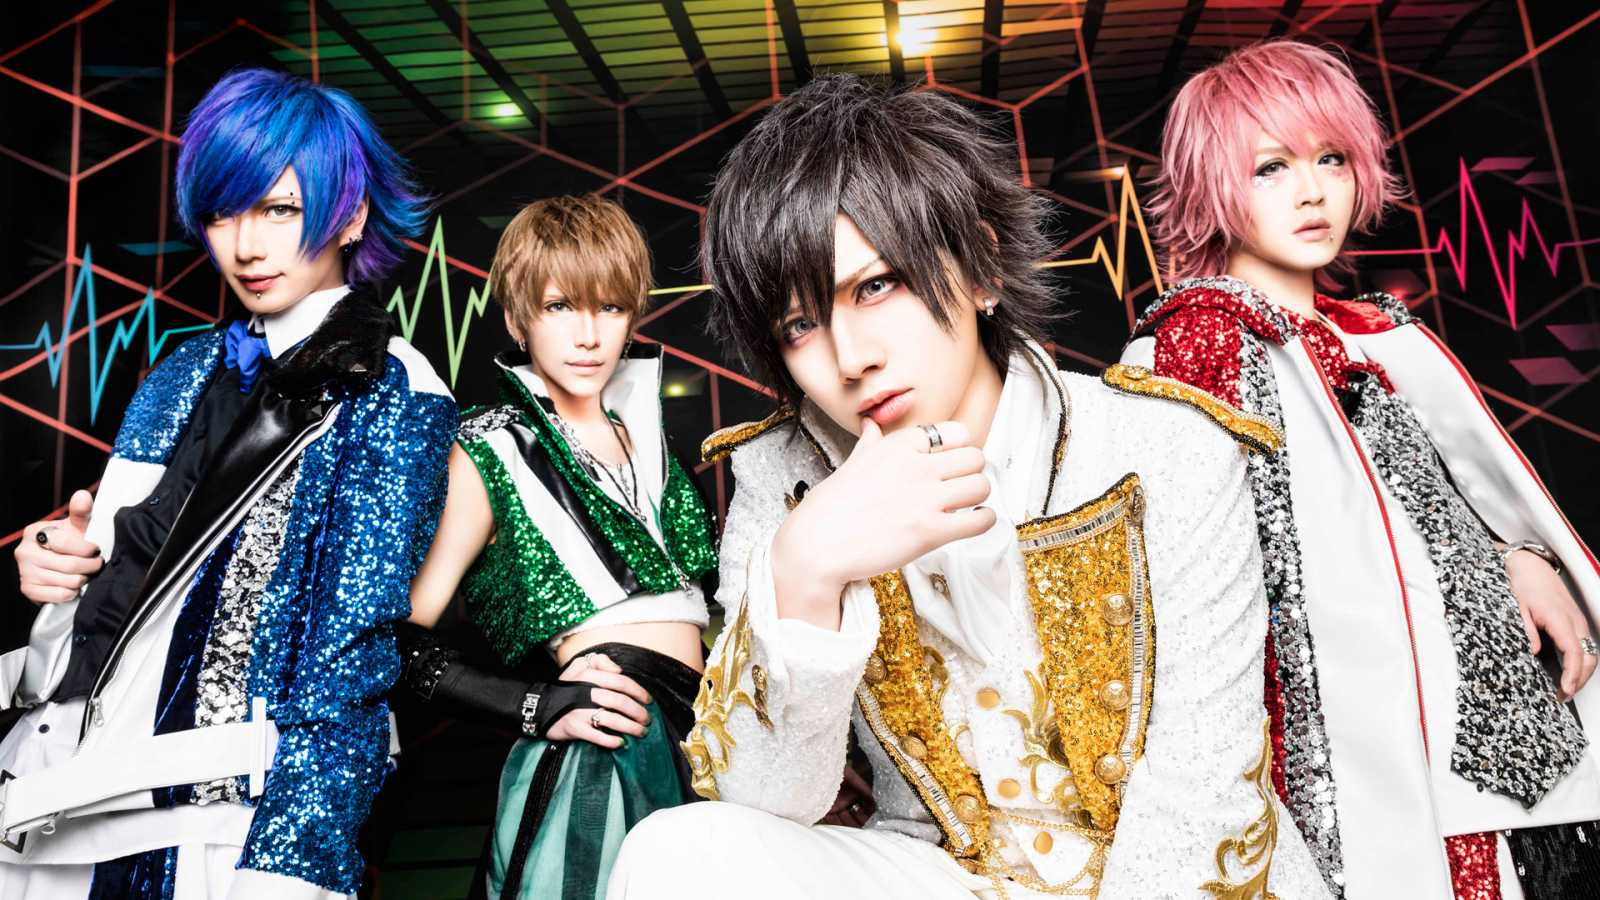 LEZARD © Riostar Records / FWD Inc. / All Rights Reserved